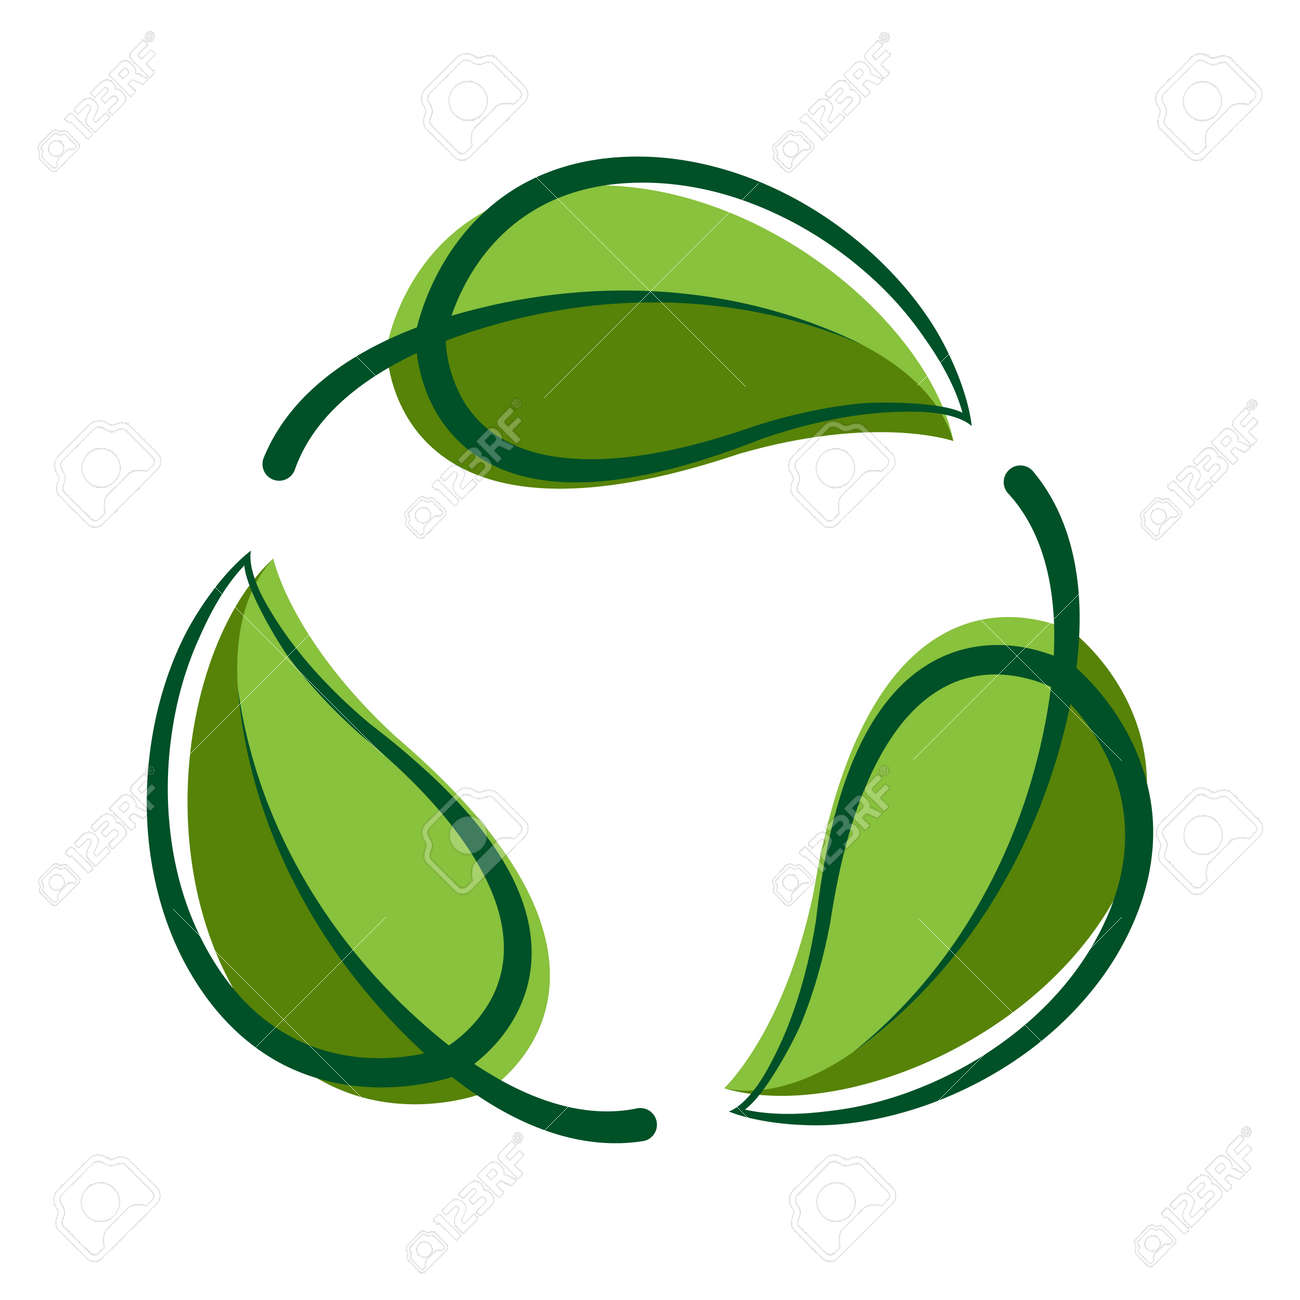 Recycle green leaf graphic symbol, Bio sign, Recycle leaf shape for eco icon, Ecological cycle symbol isolated on white - 166762164